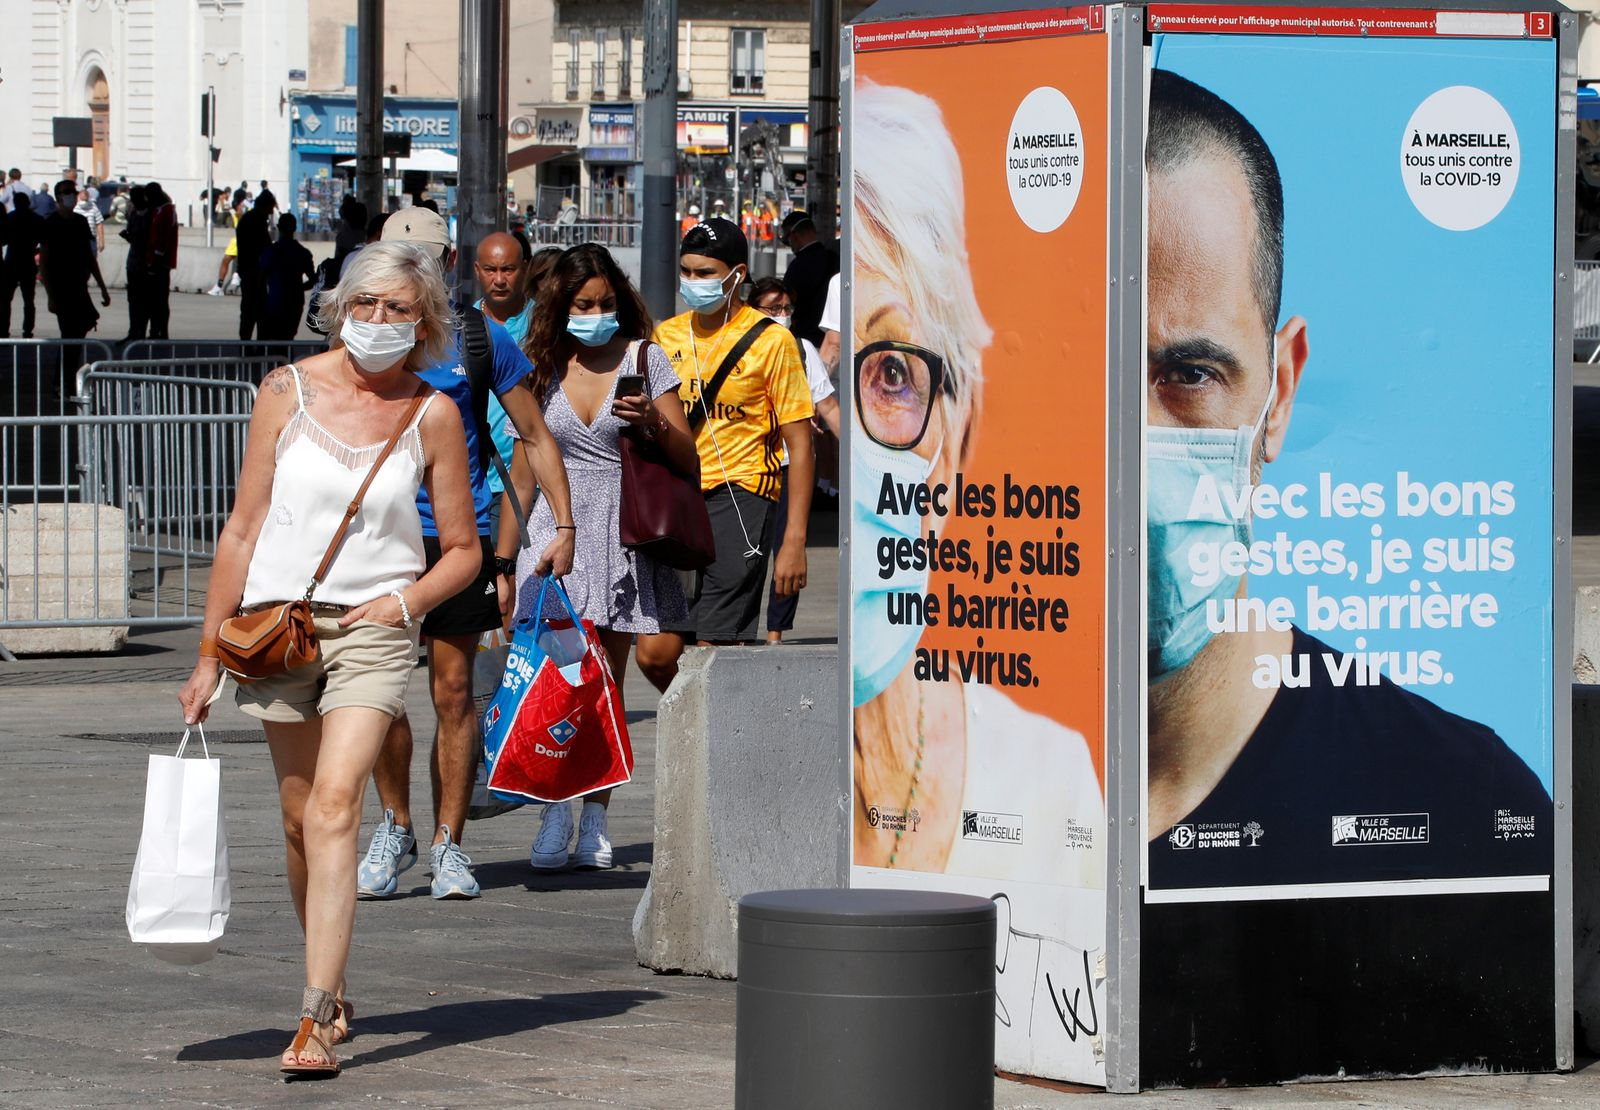 FILE PHOTO: People wearing protective face masks walk near the Old Port in Marseille